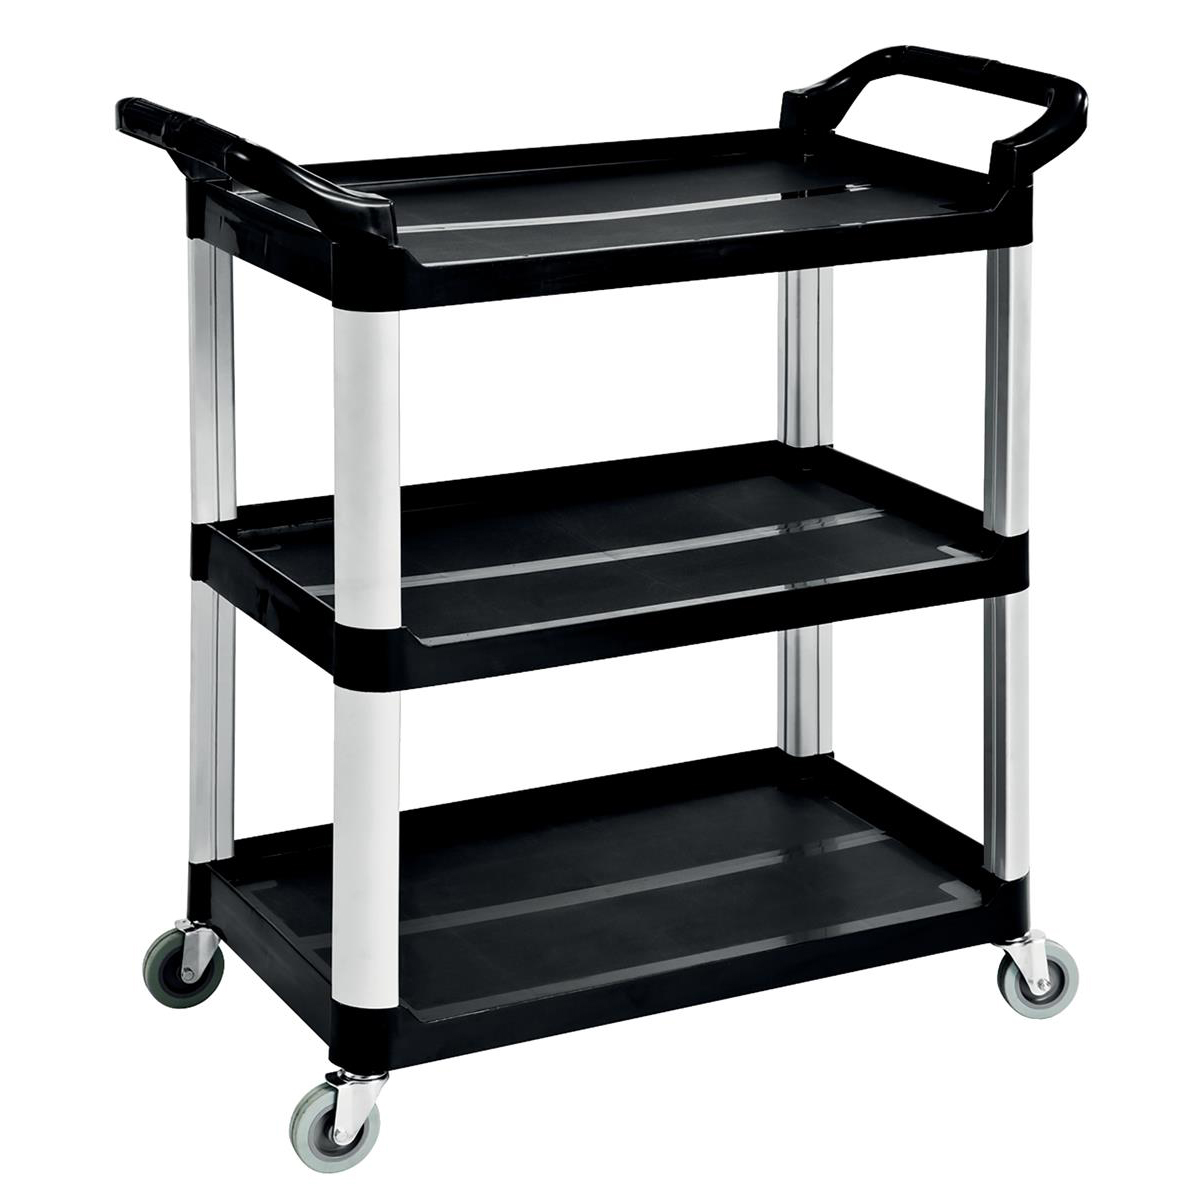 Trolleys or accessories 5 Star Facilities Utility Tray Trolley Standard 3 Shelf Capacity 150kg W460xD750xH980mm